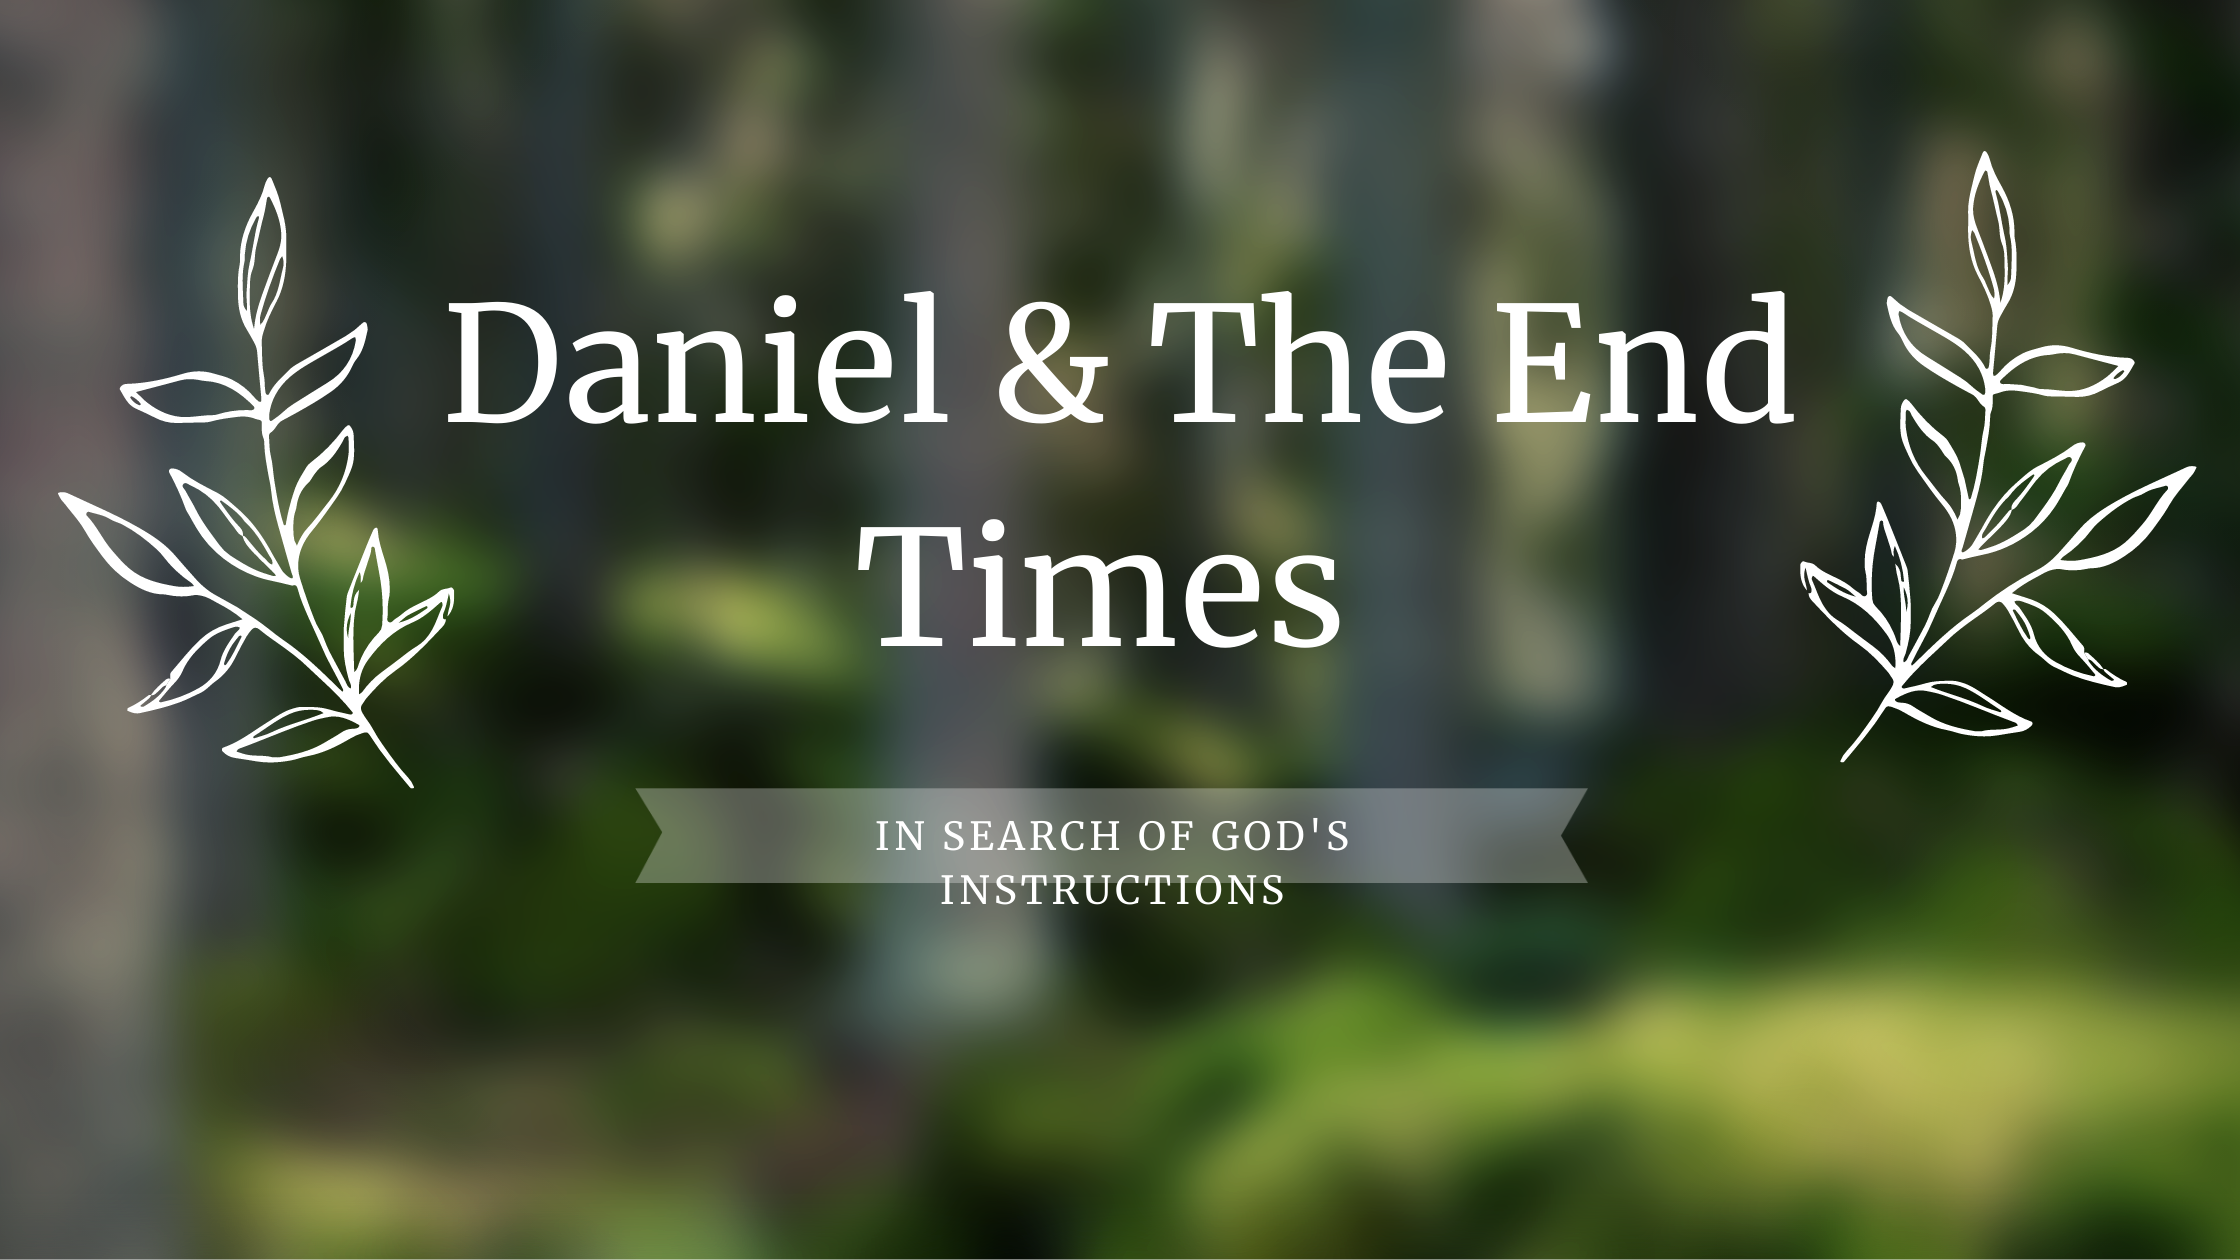 Daniel-&-The-End-Times/graphic